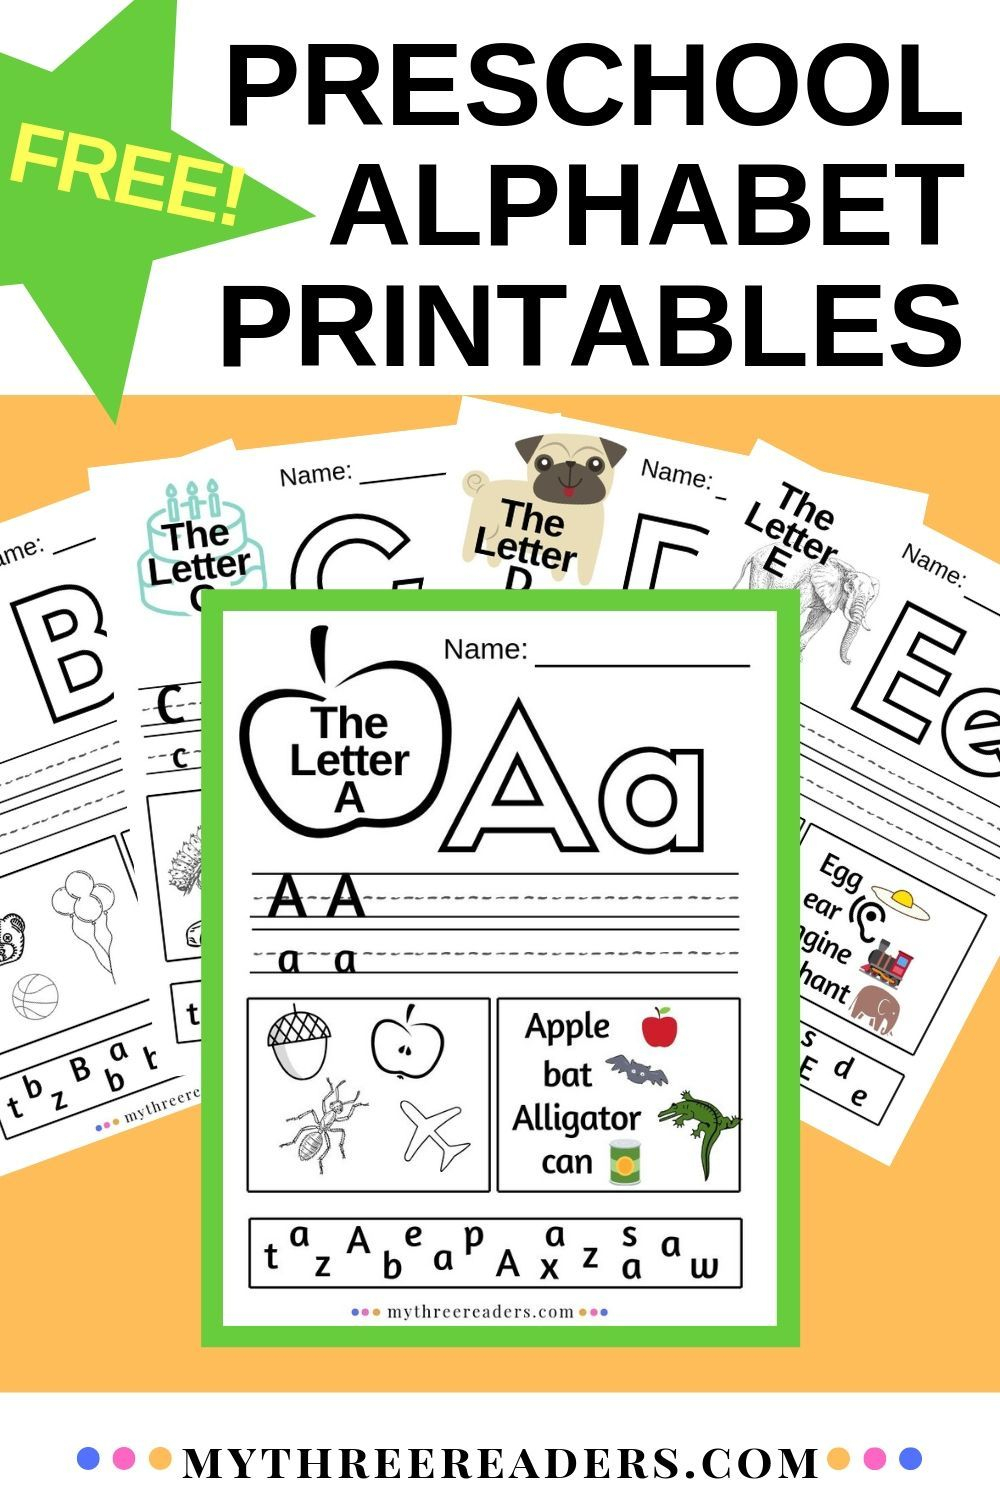 Alphabet Worksheets A-Z | Abc Printables For Preschool within Alphabet Worksheets Az